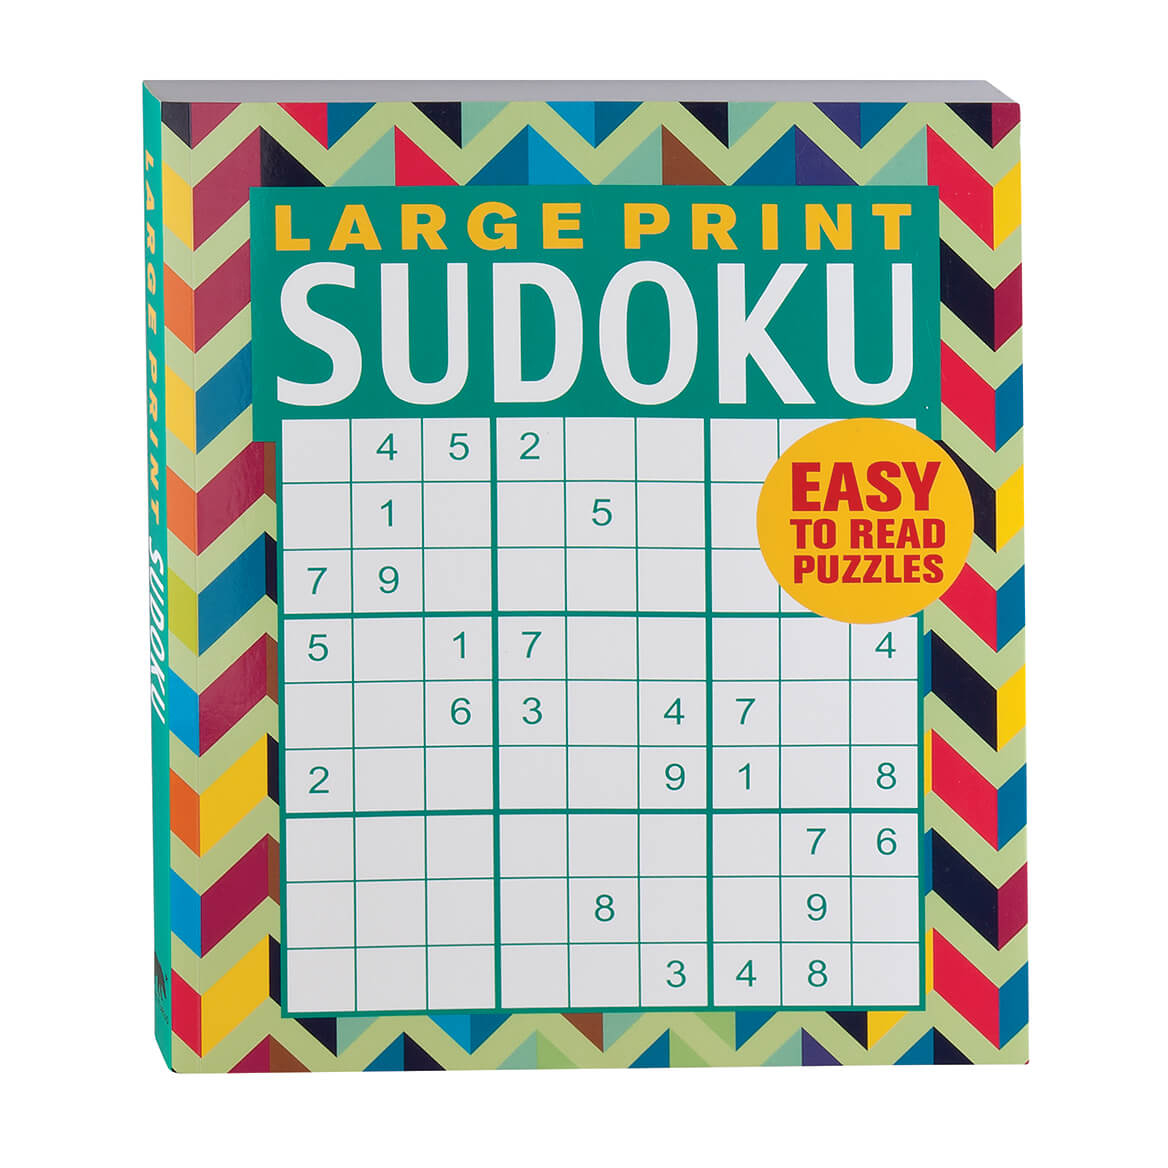 Large Print Sudoku Book Coupons, Discount Codes – Gifts For Women - Puzzle Print Discount Code